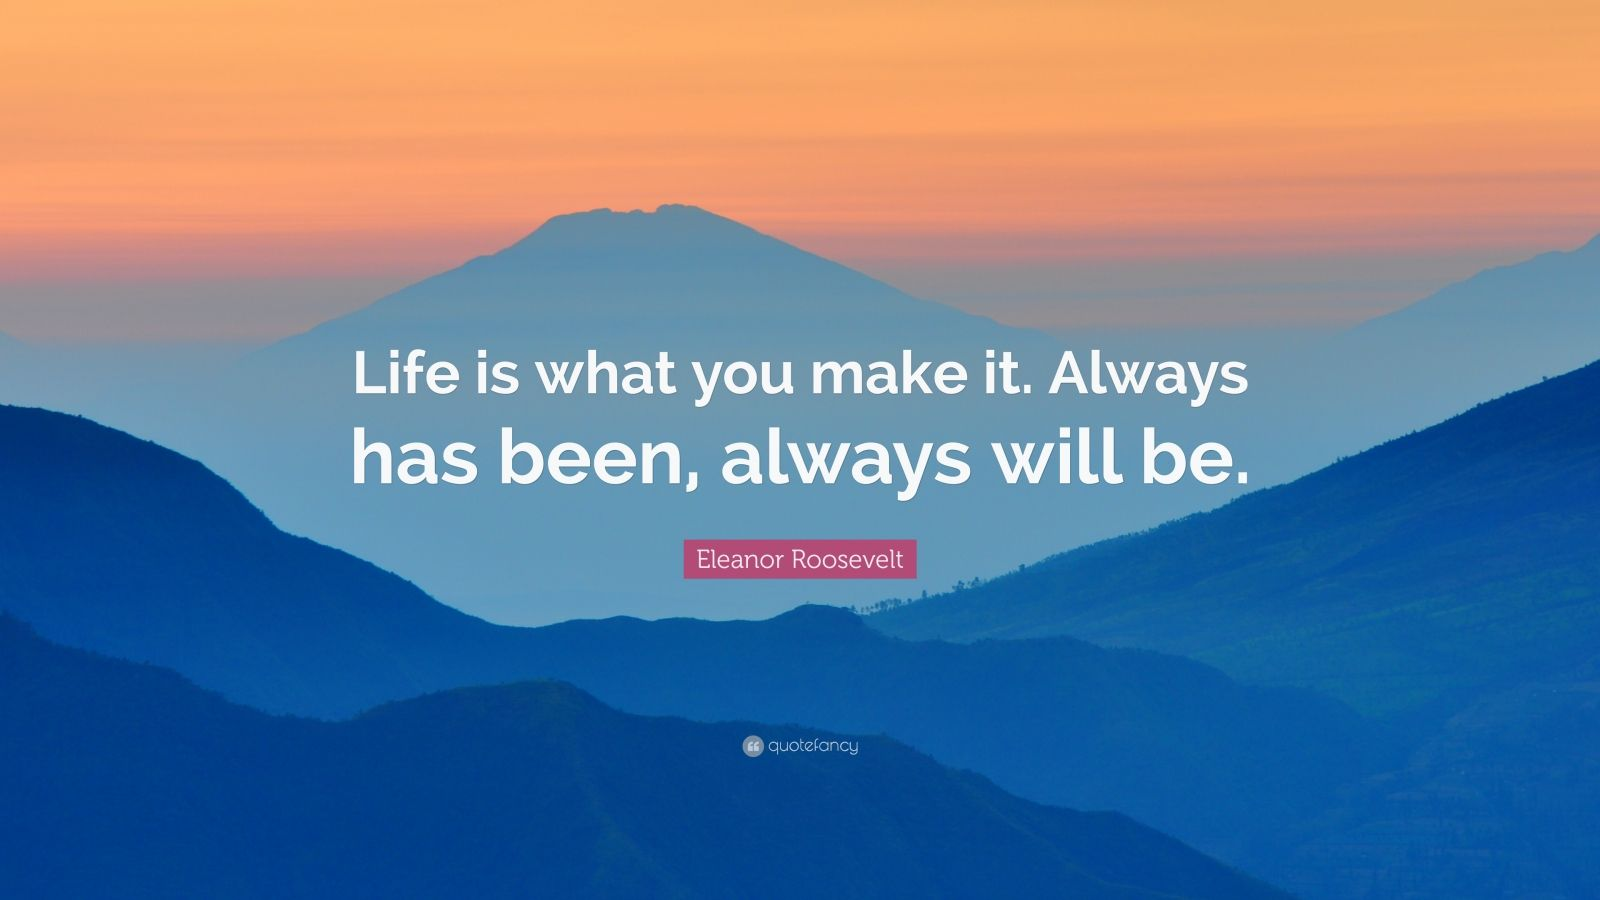 Change Quote Wallpaper Eleanor Roosevelt Quote Life Is What You Make It Always